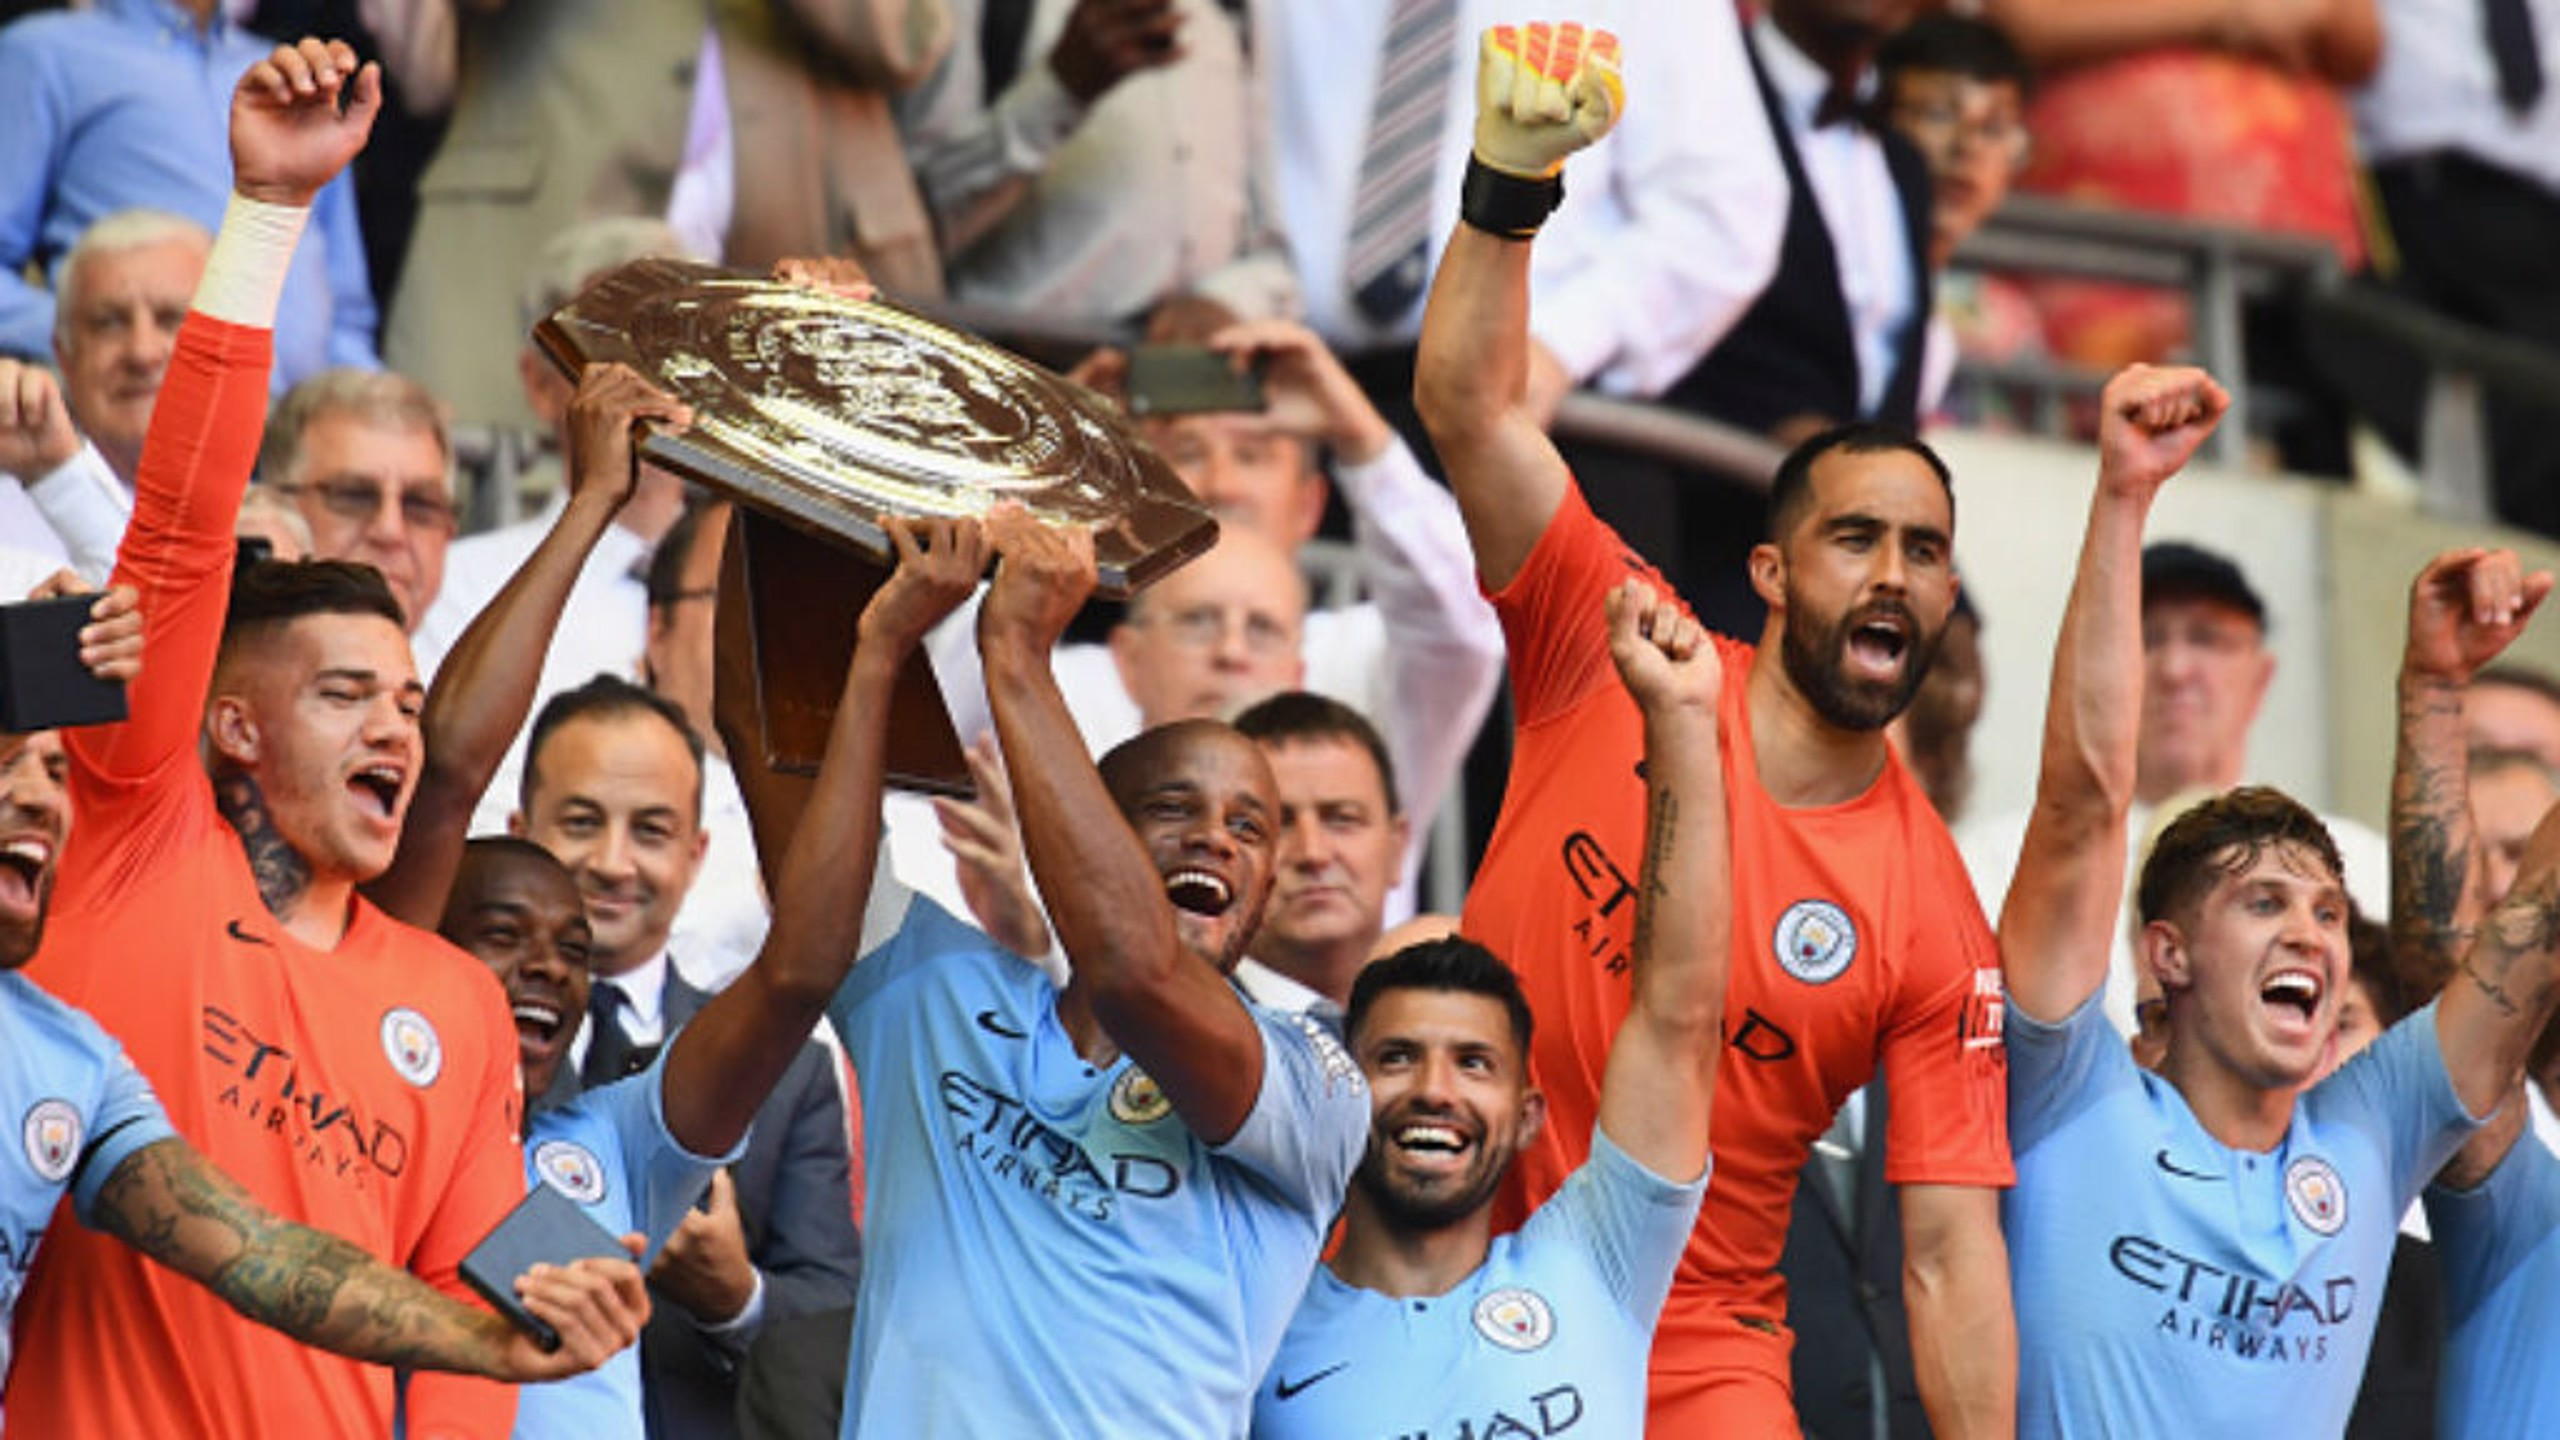 FIRST SILVERWARE: City lift their first trophy of the new season with a 2-0 Community Shield win over Chelsea